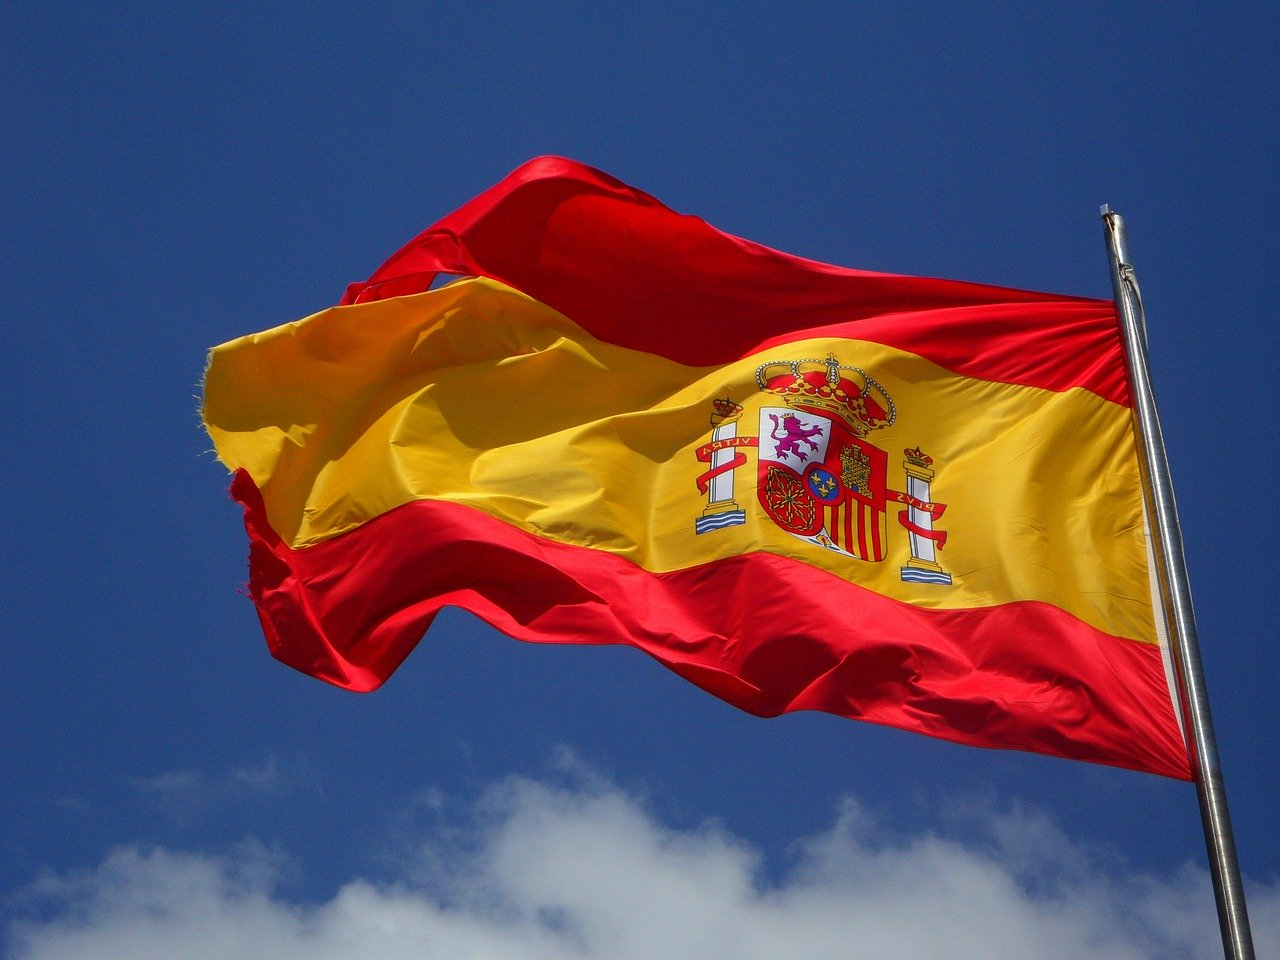 Spain legalizes euthanasia for terminally ill persons